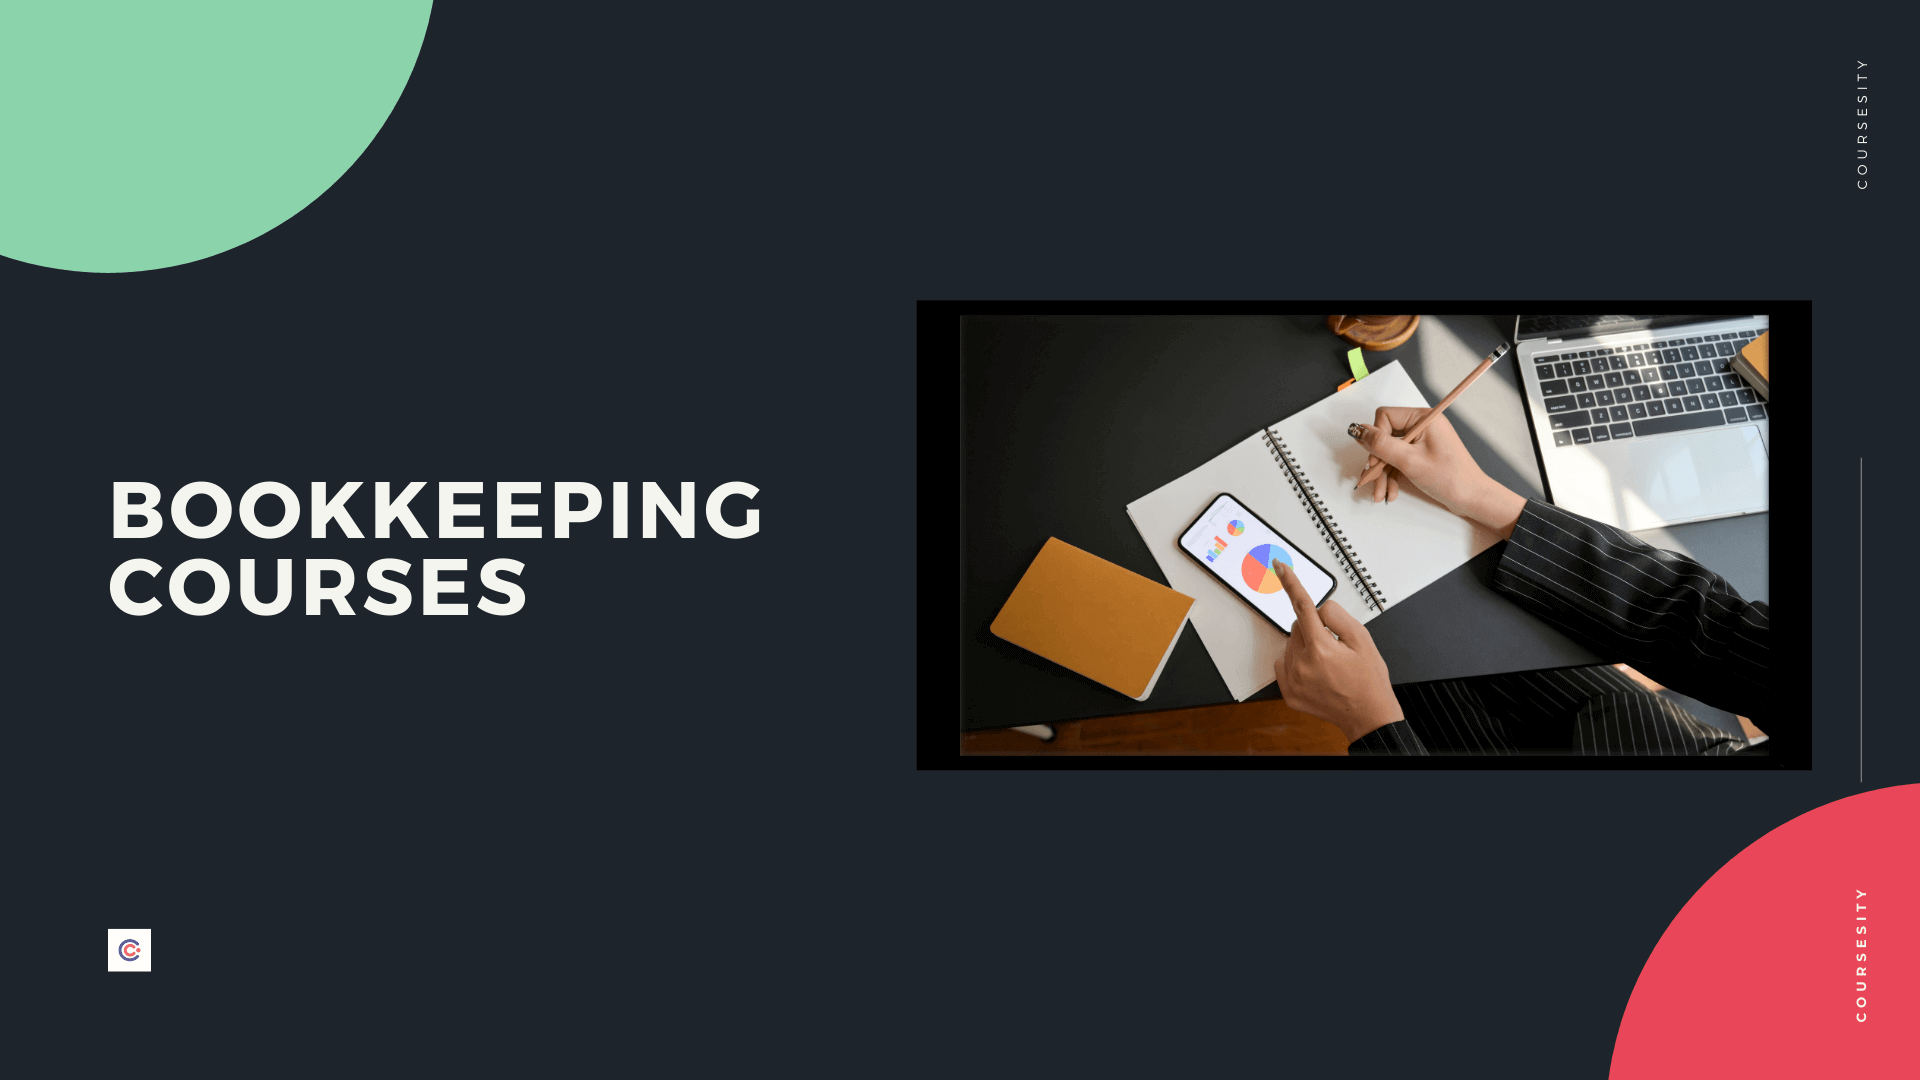 8 Best Bookkeeping Courses and Certifications - Learn Bookkeeping Online